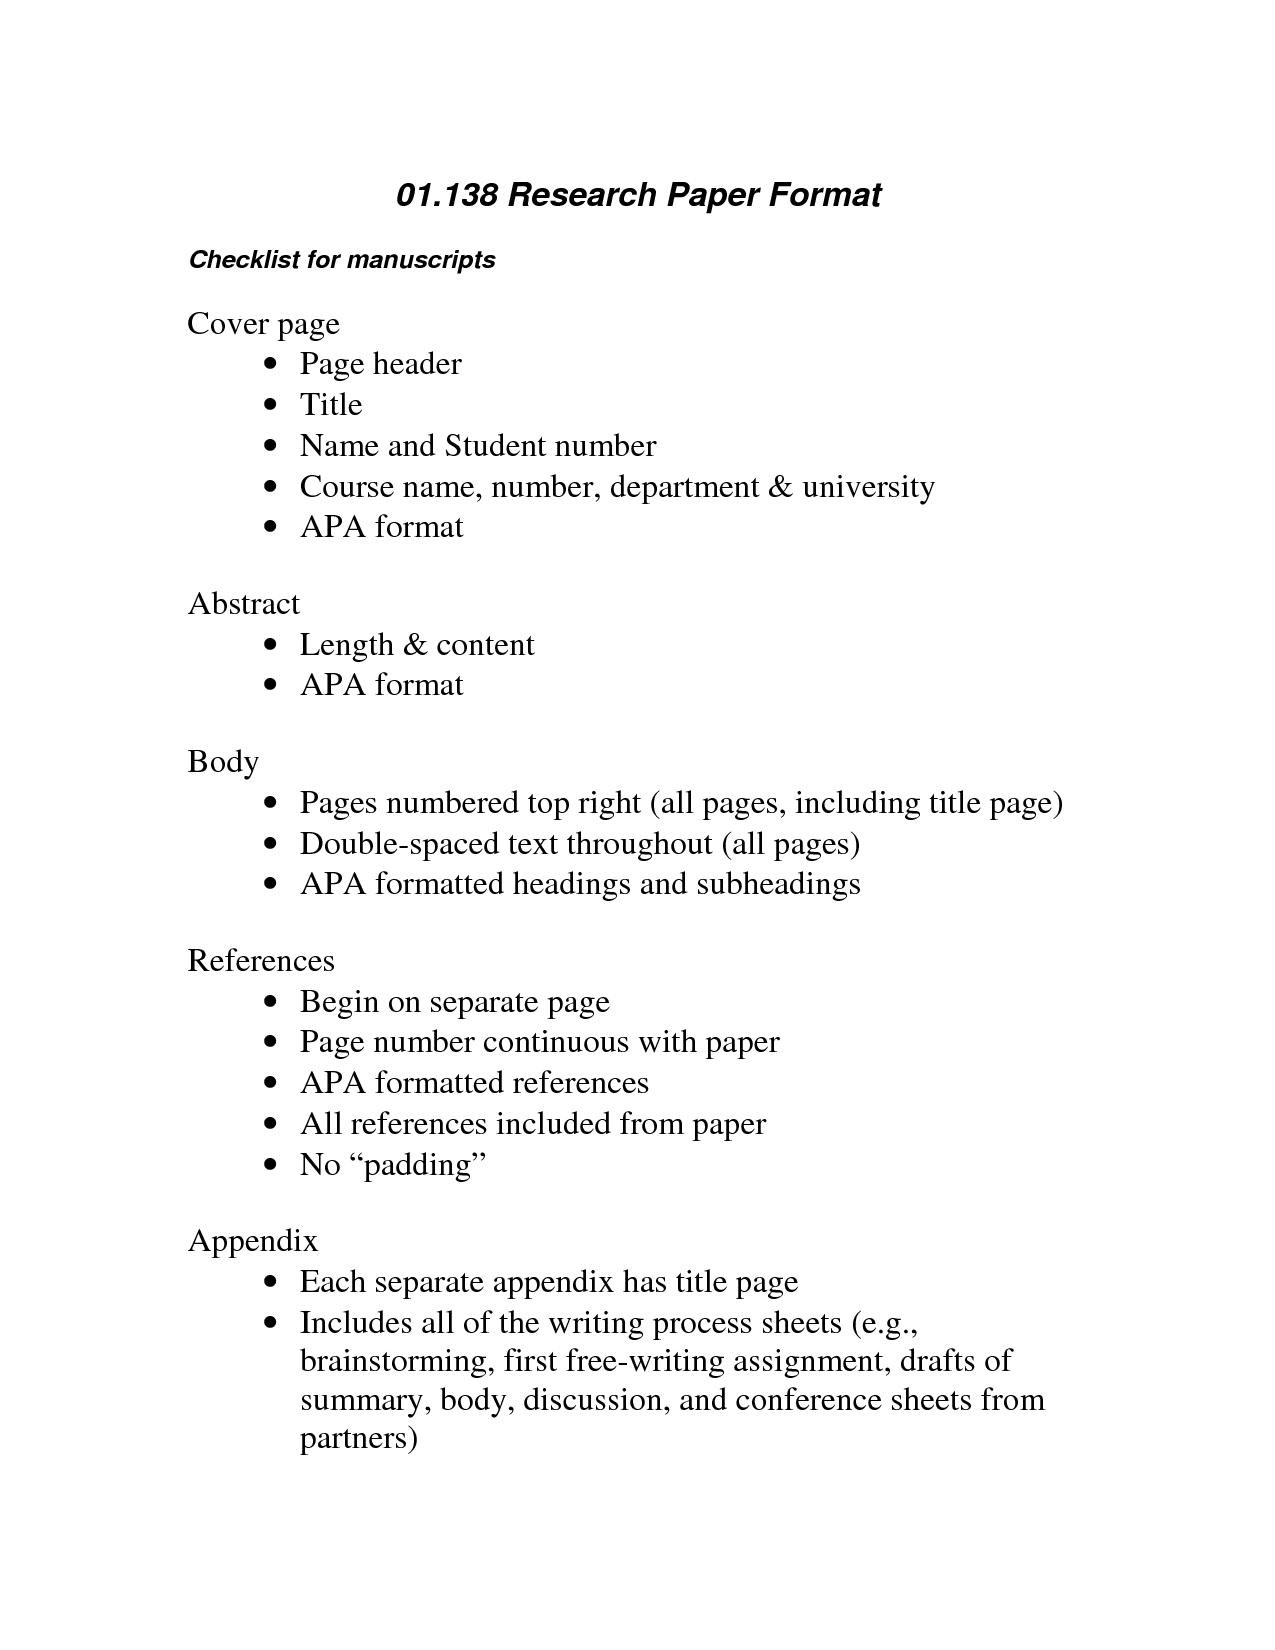 004 Outlines For Researchs Apa Awful Research Papers Sample Outline Paper Style Example Full